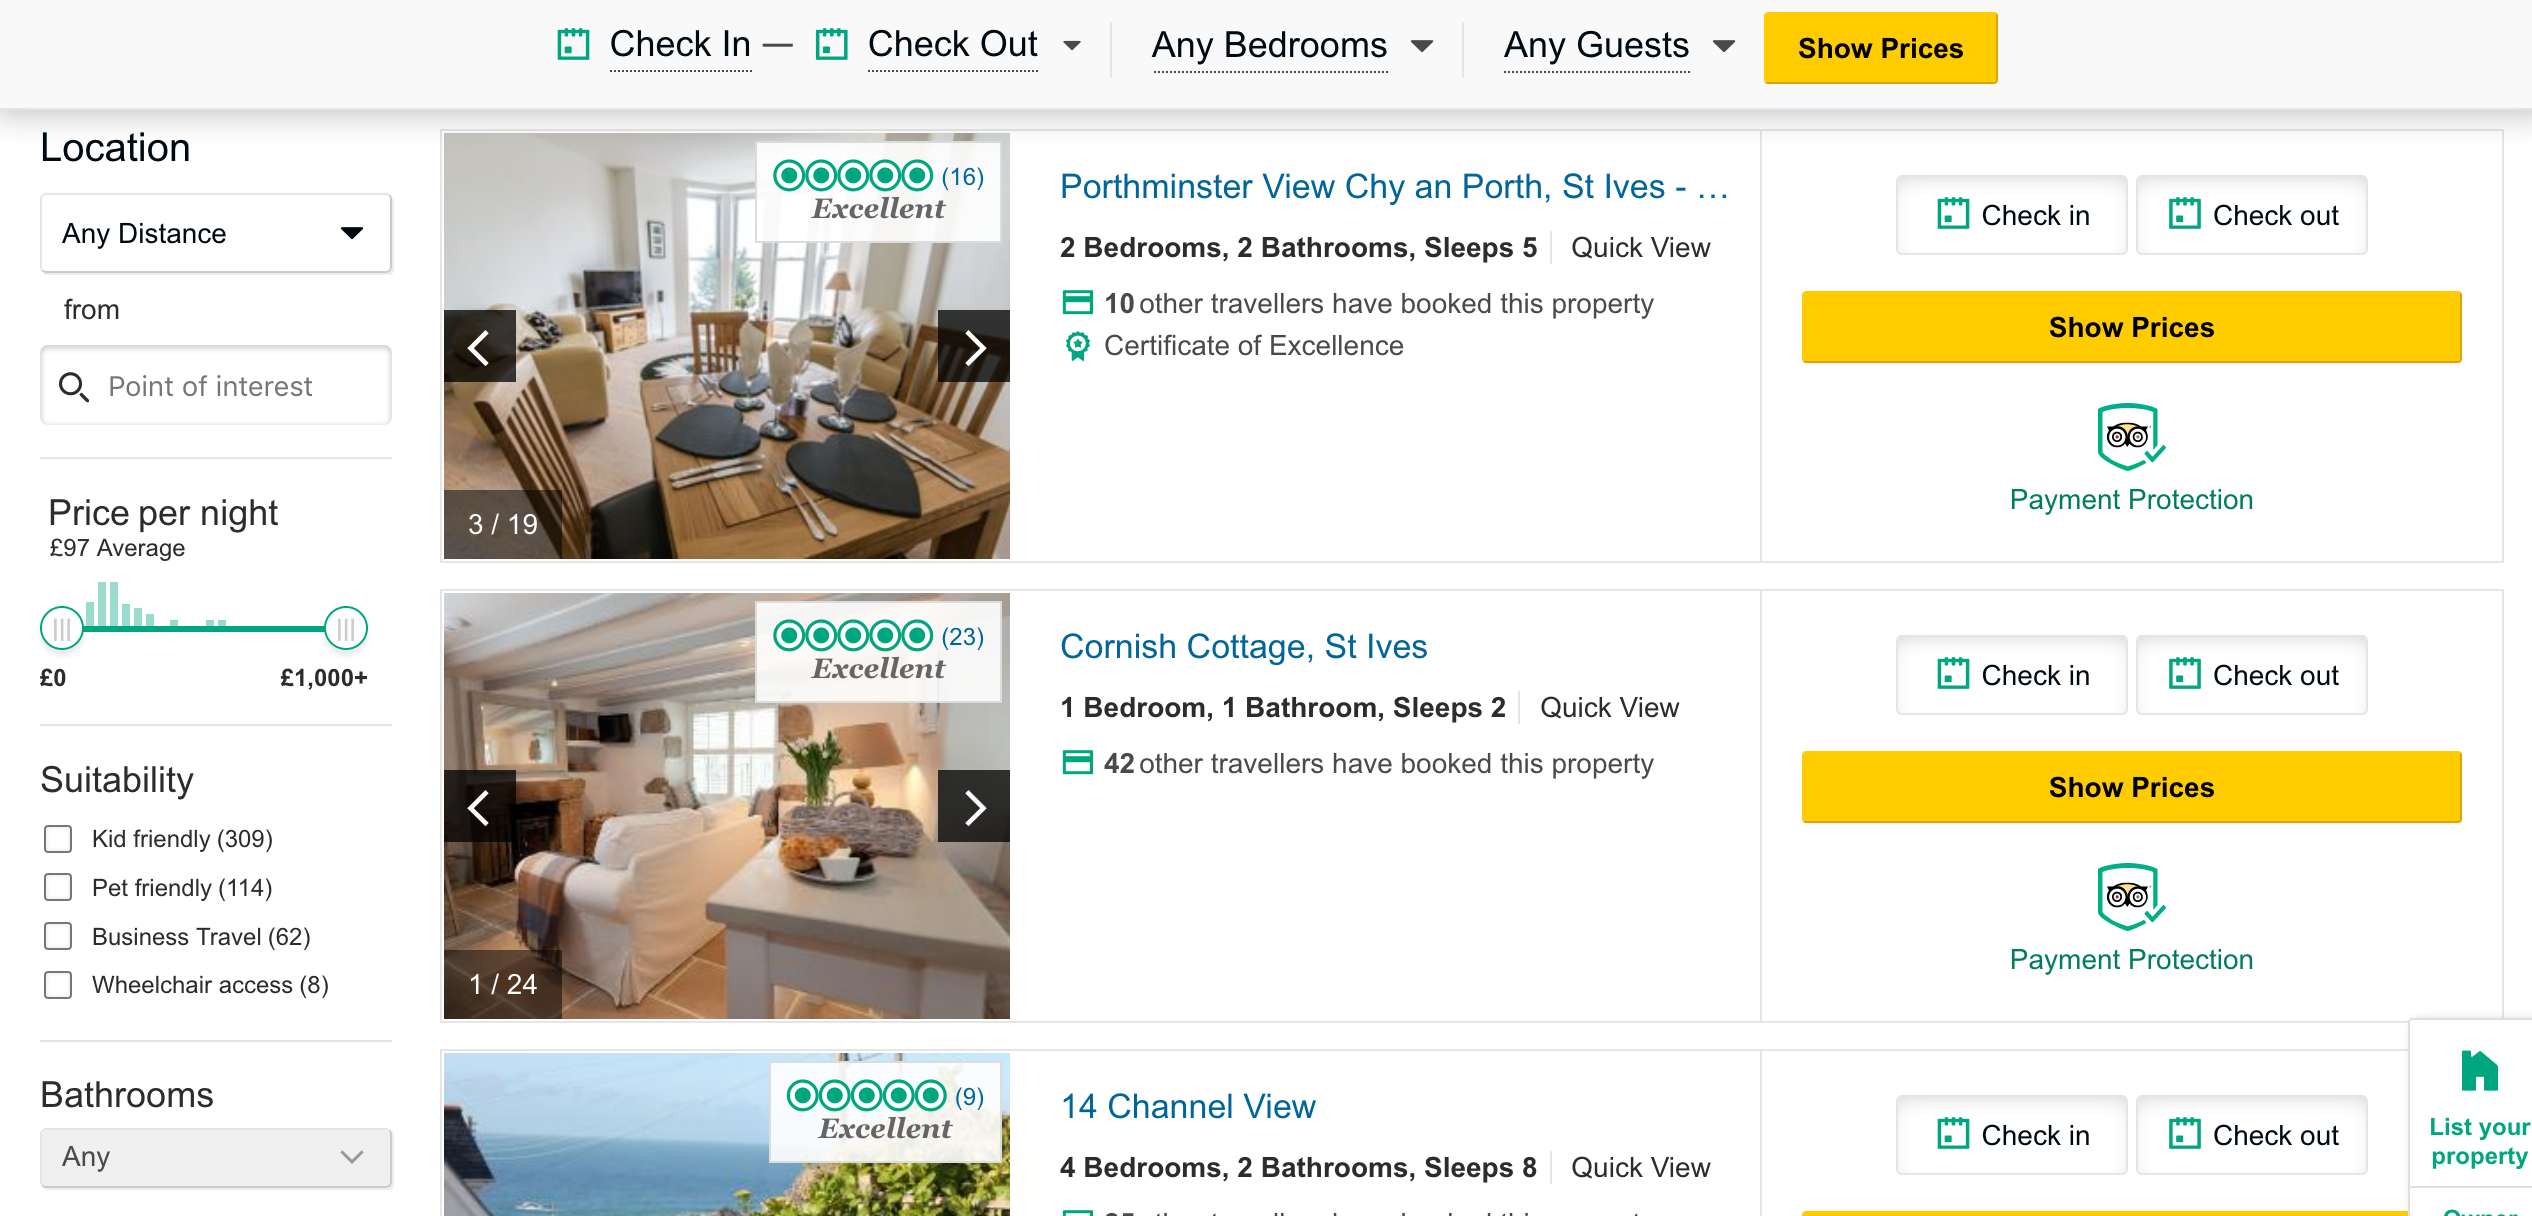 TripAdvisor listings page multiple images